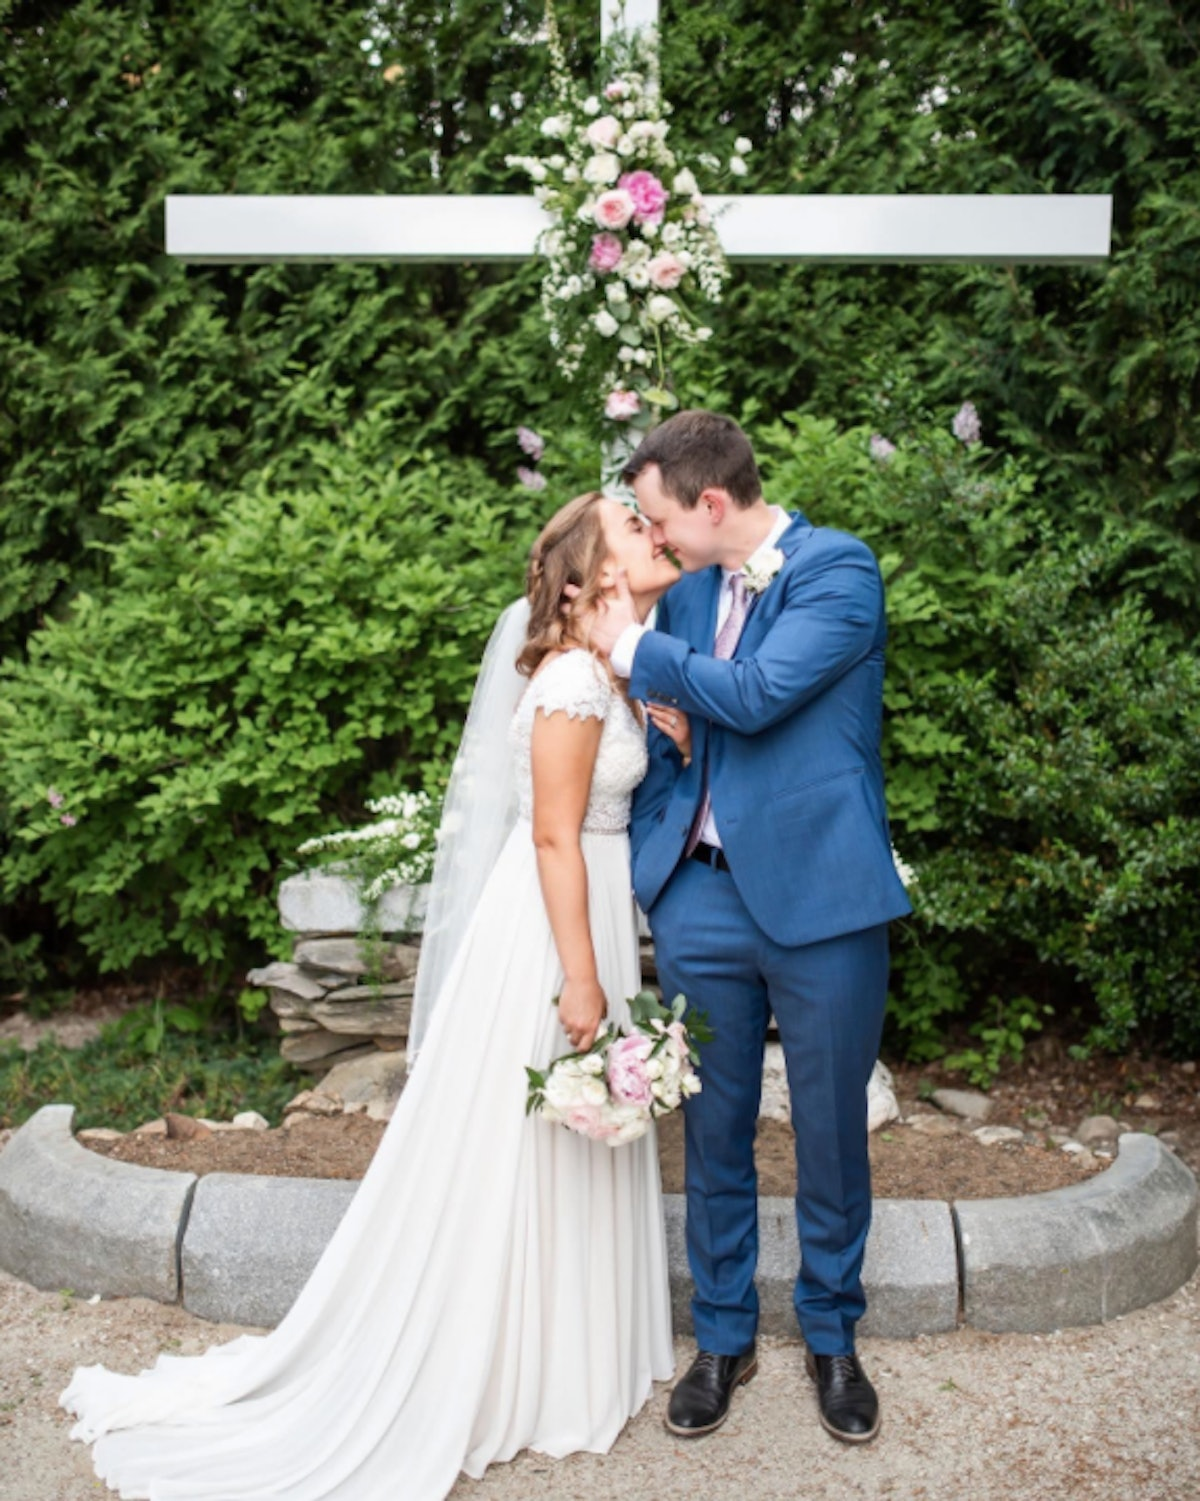 These quarantine wedding stories offer so much hope.